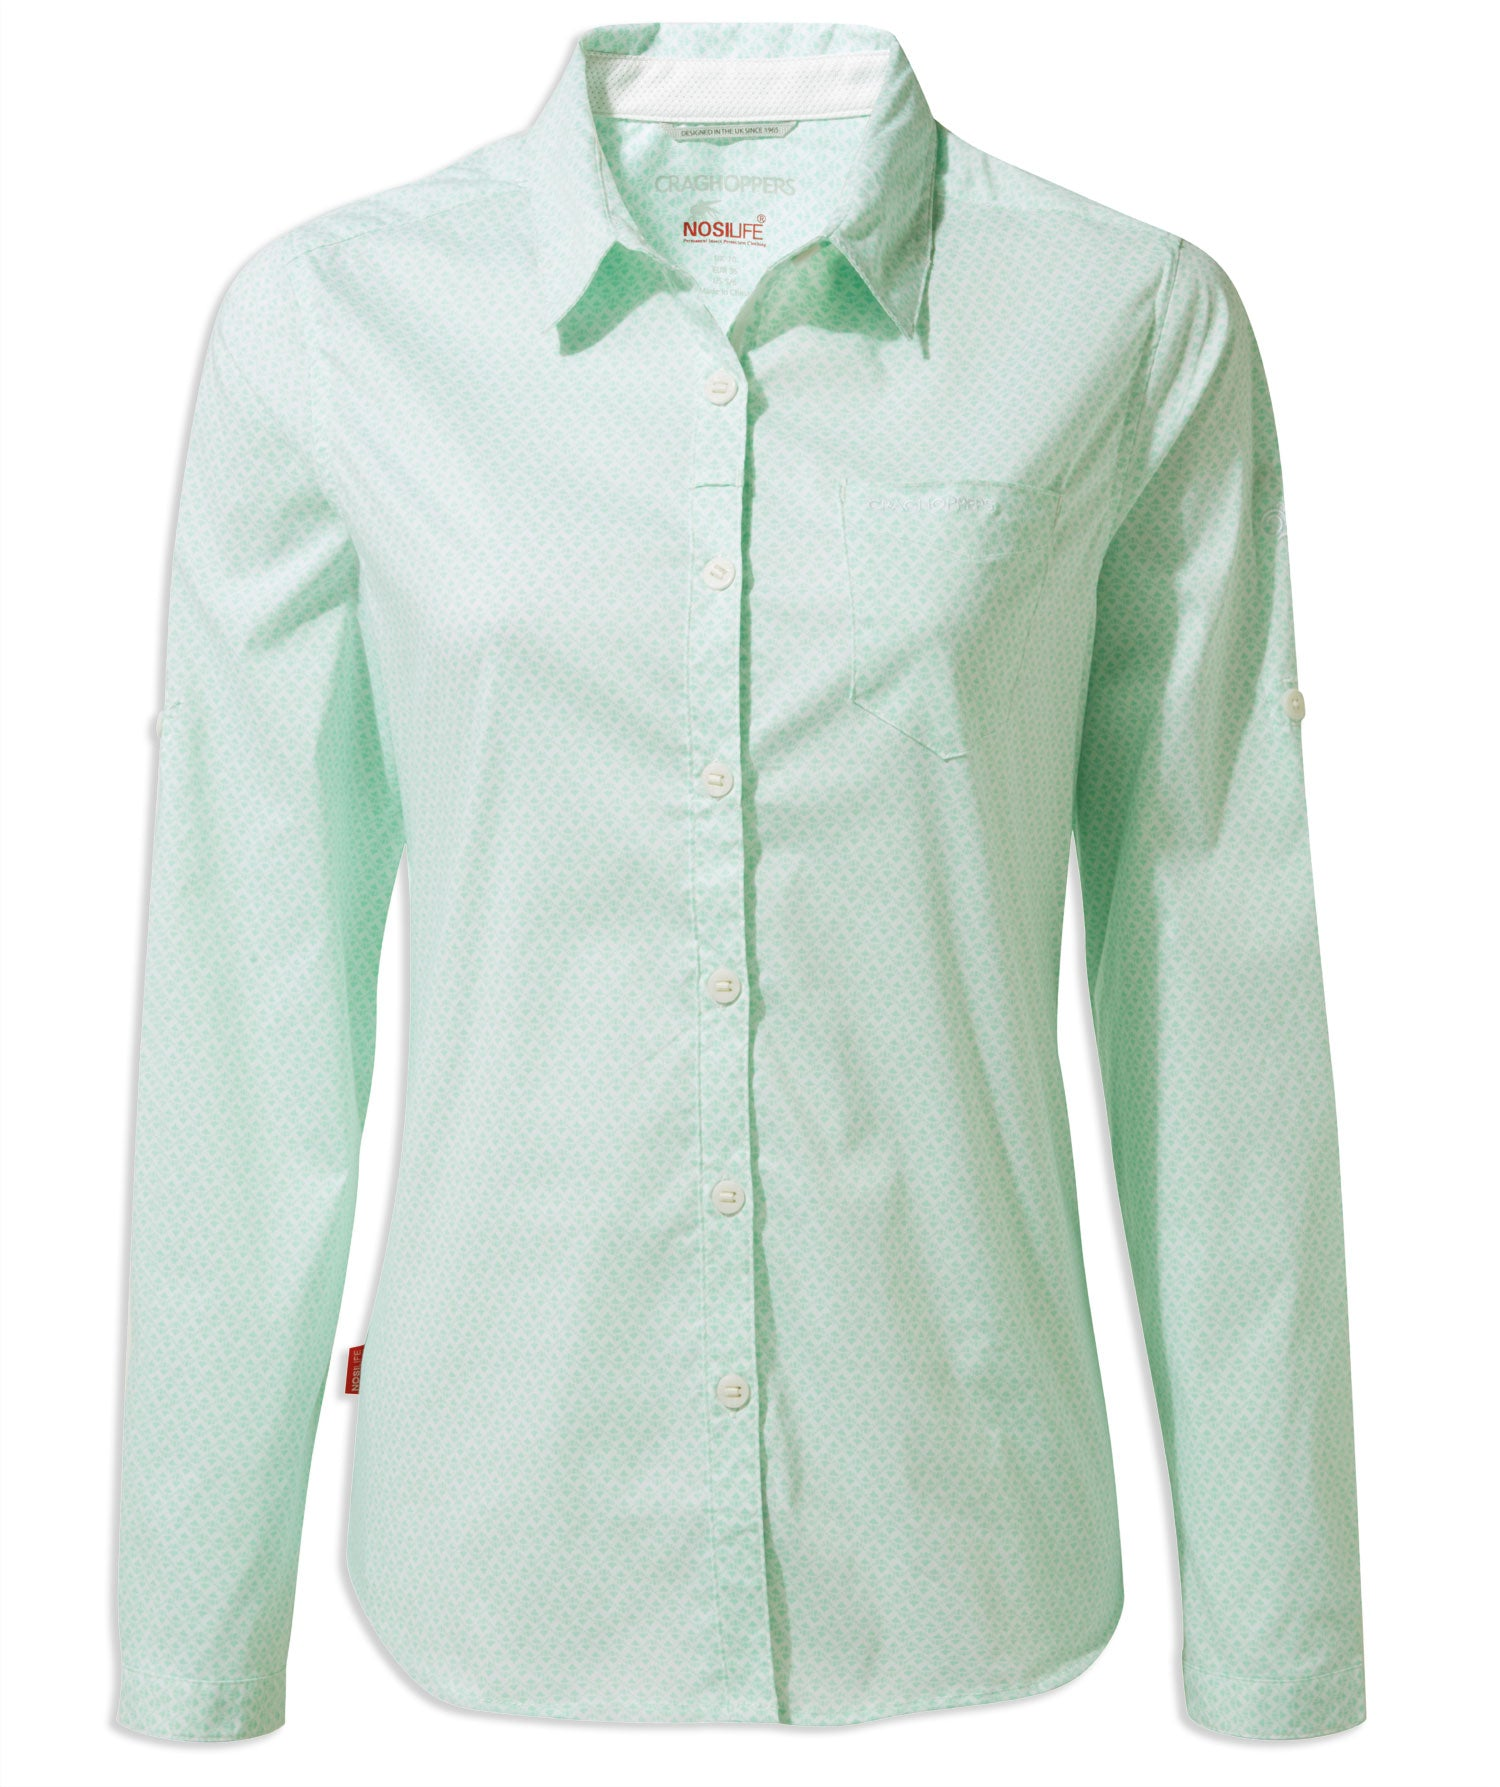 Craghoppers NosiLife Verona Long Sleeve Shirt in Capri Blue